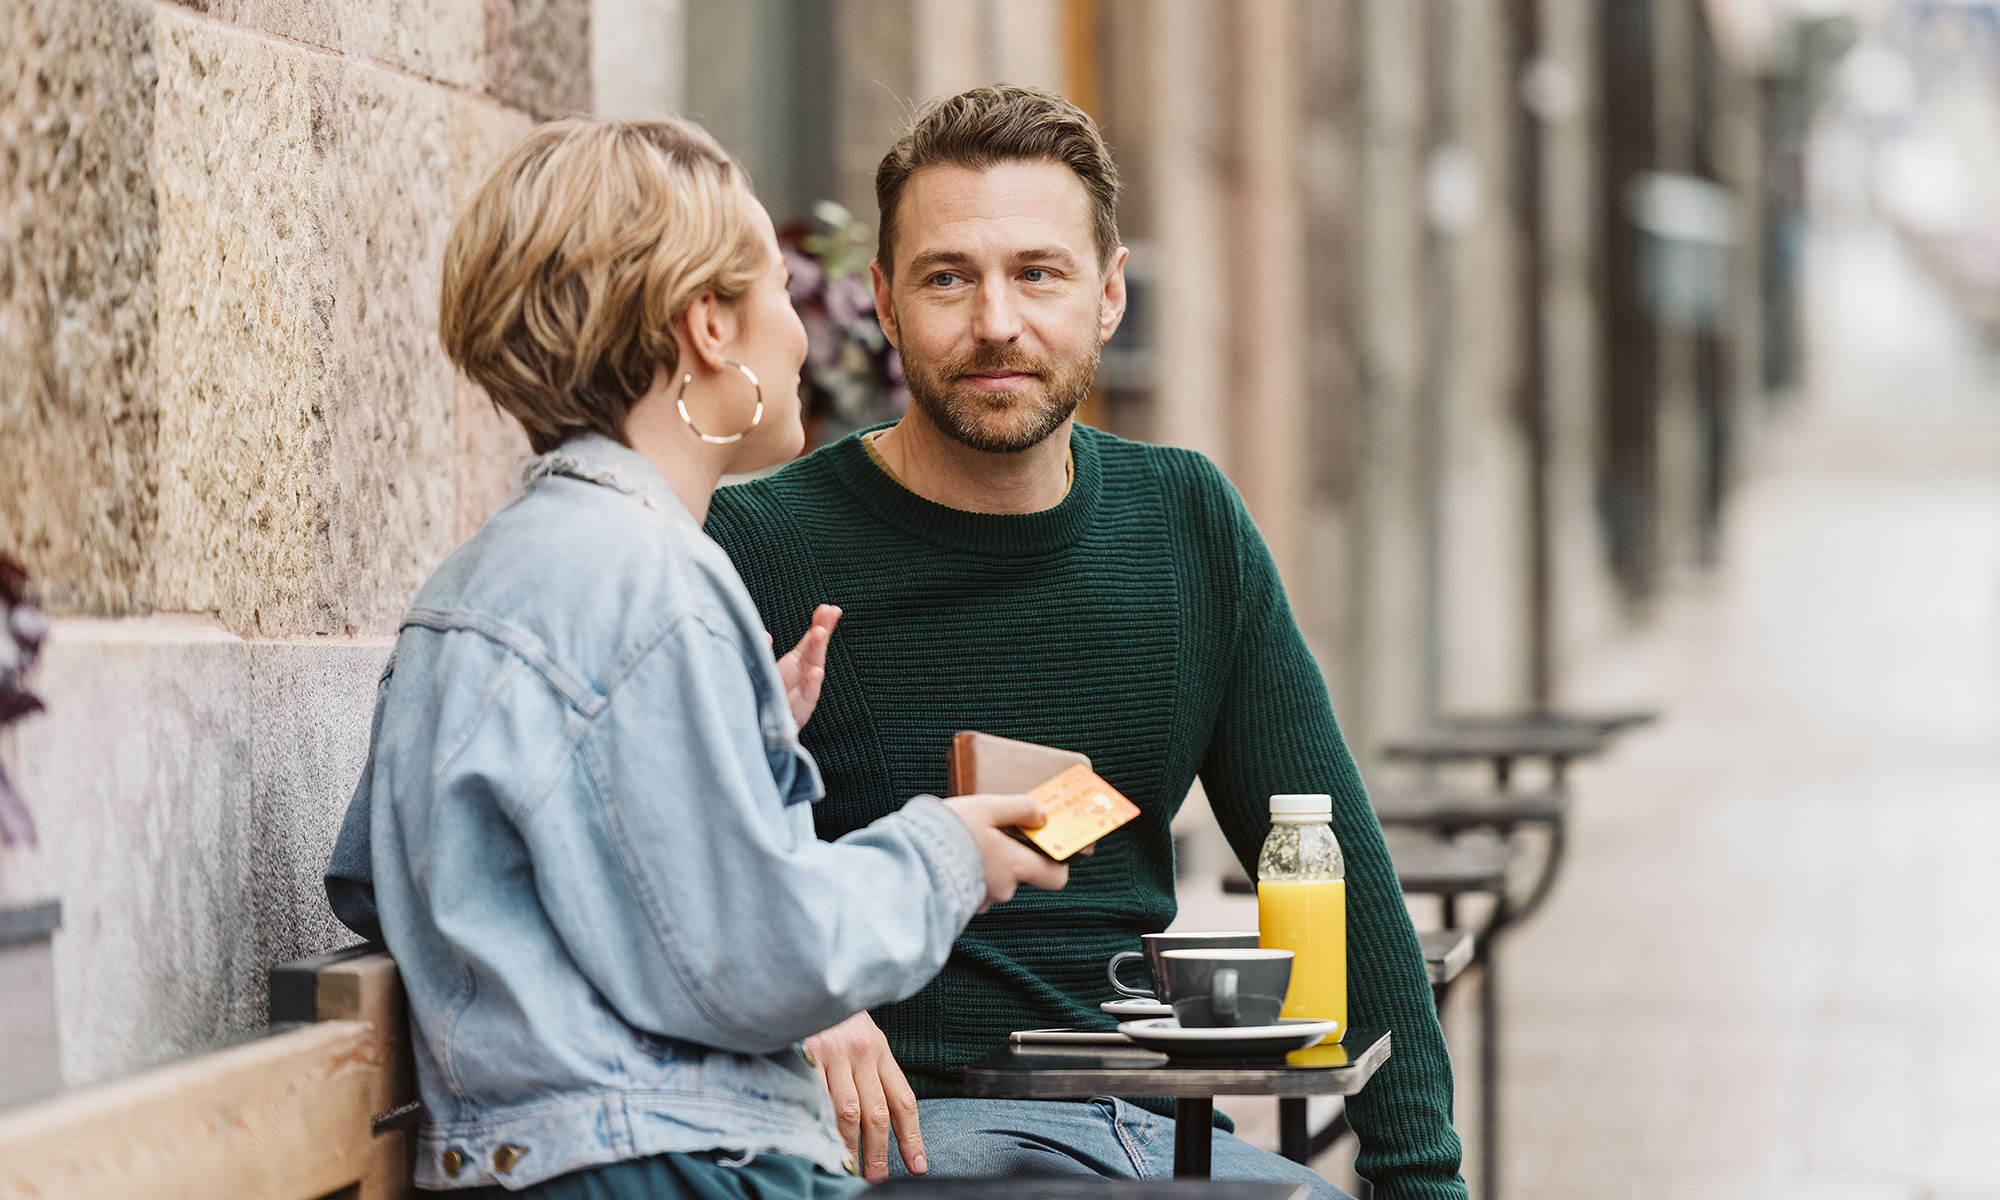 Woman and man sitting outside a café.